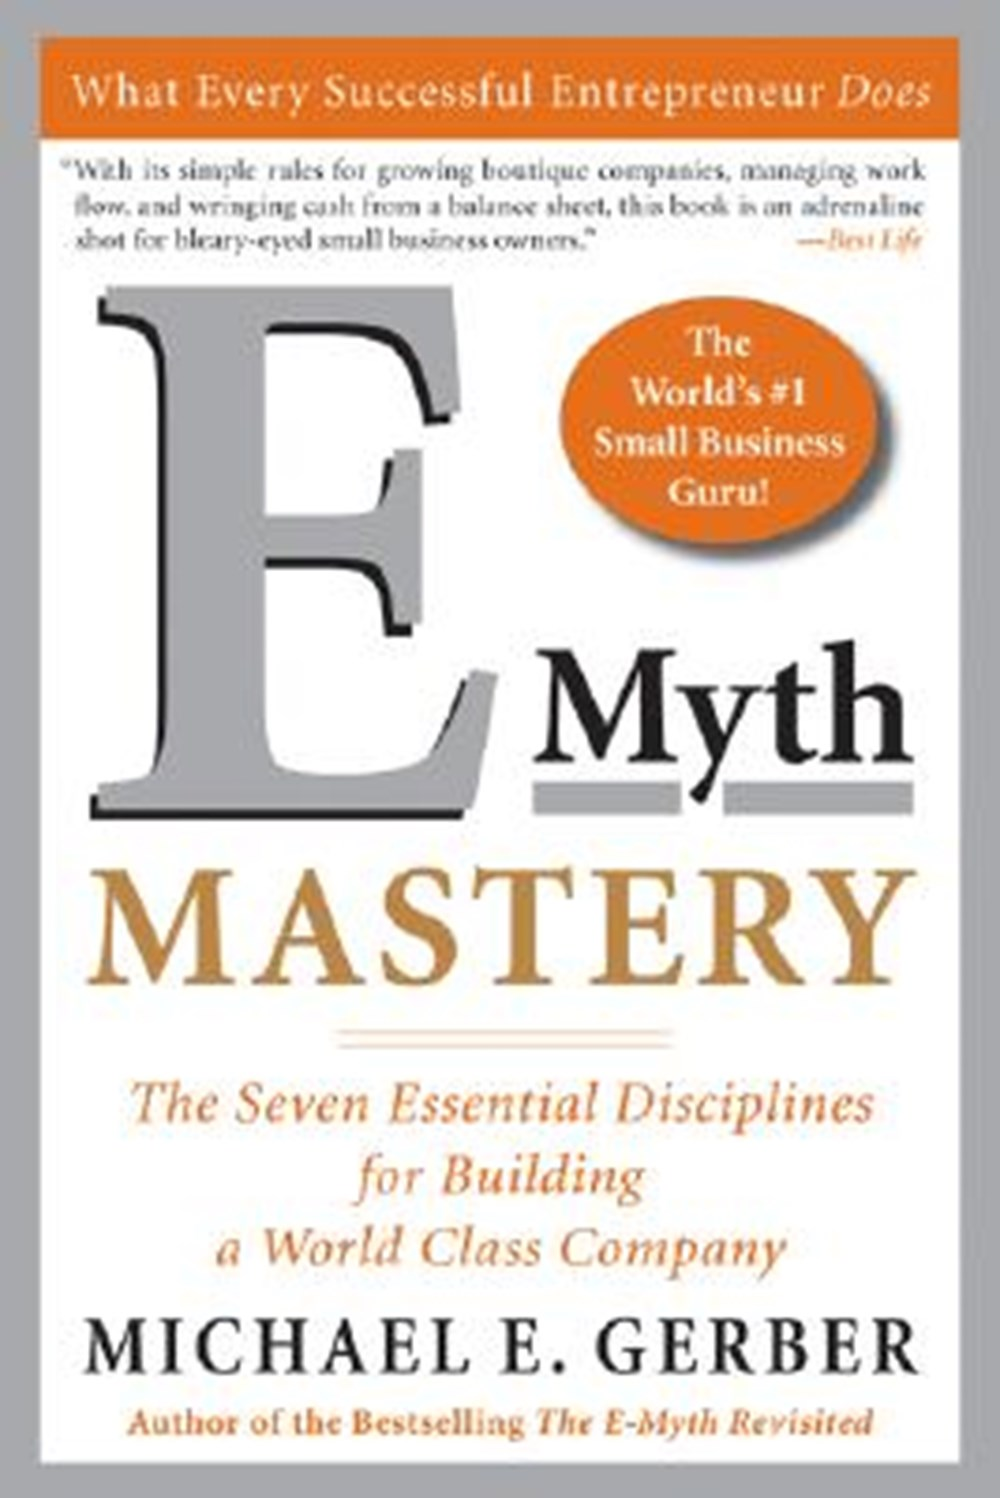 E-Myth Mastery The Seven Essential Disciplines for Building a World-Class Company